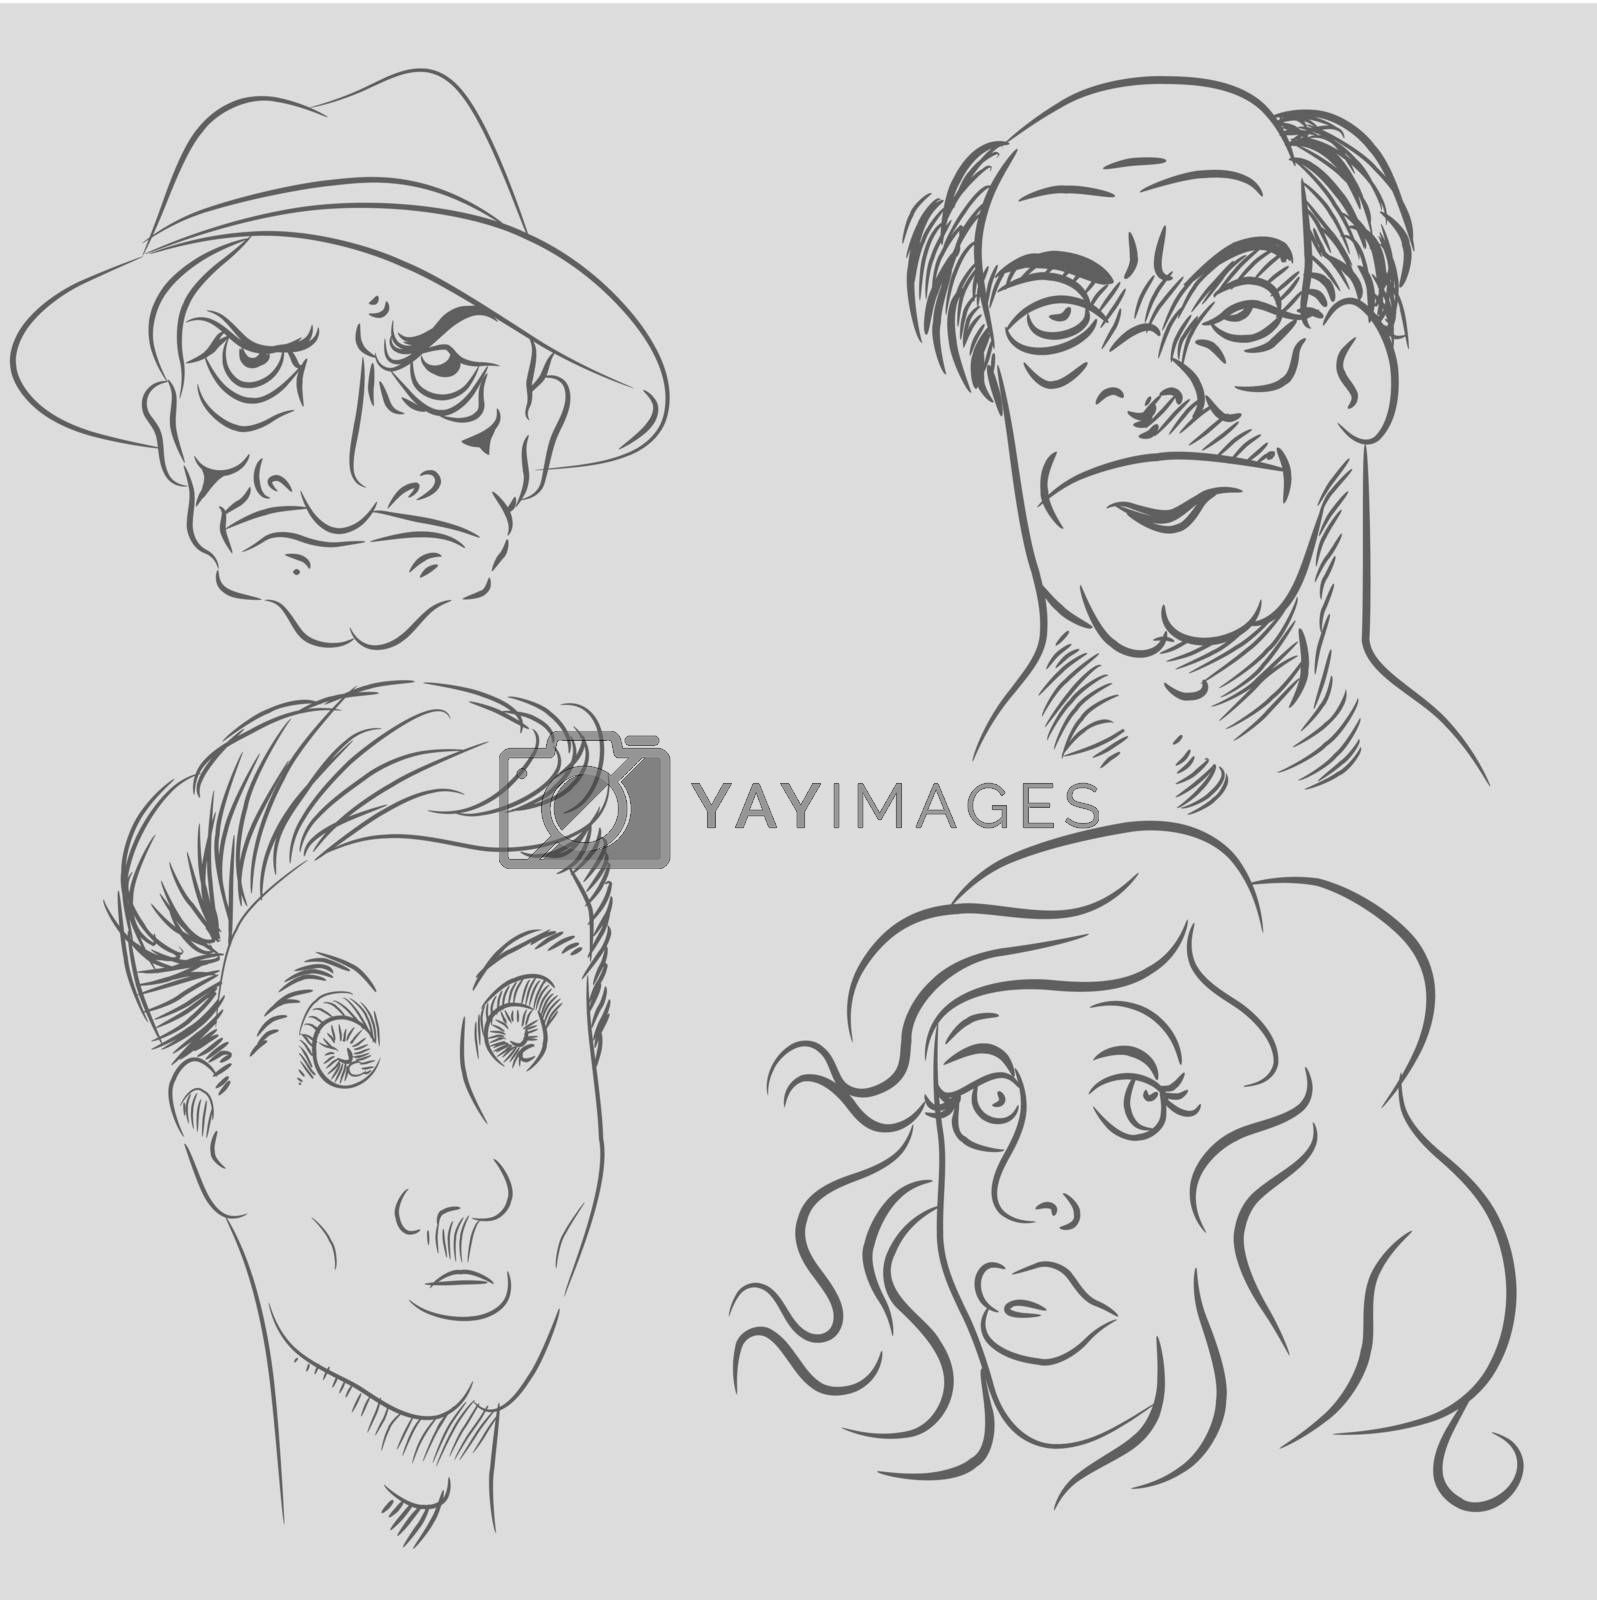 An image of a cartoon character faces.